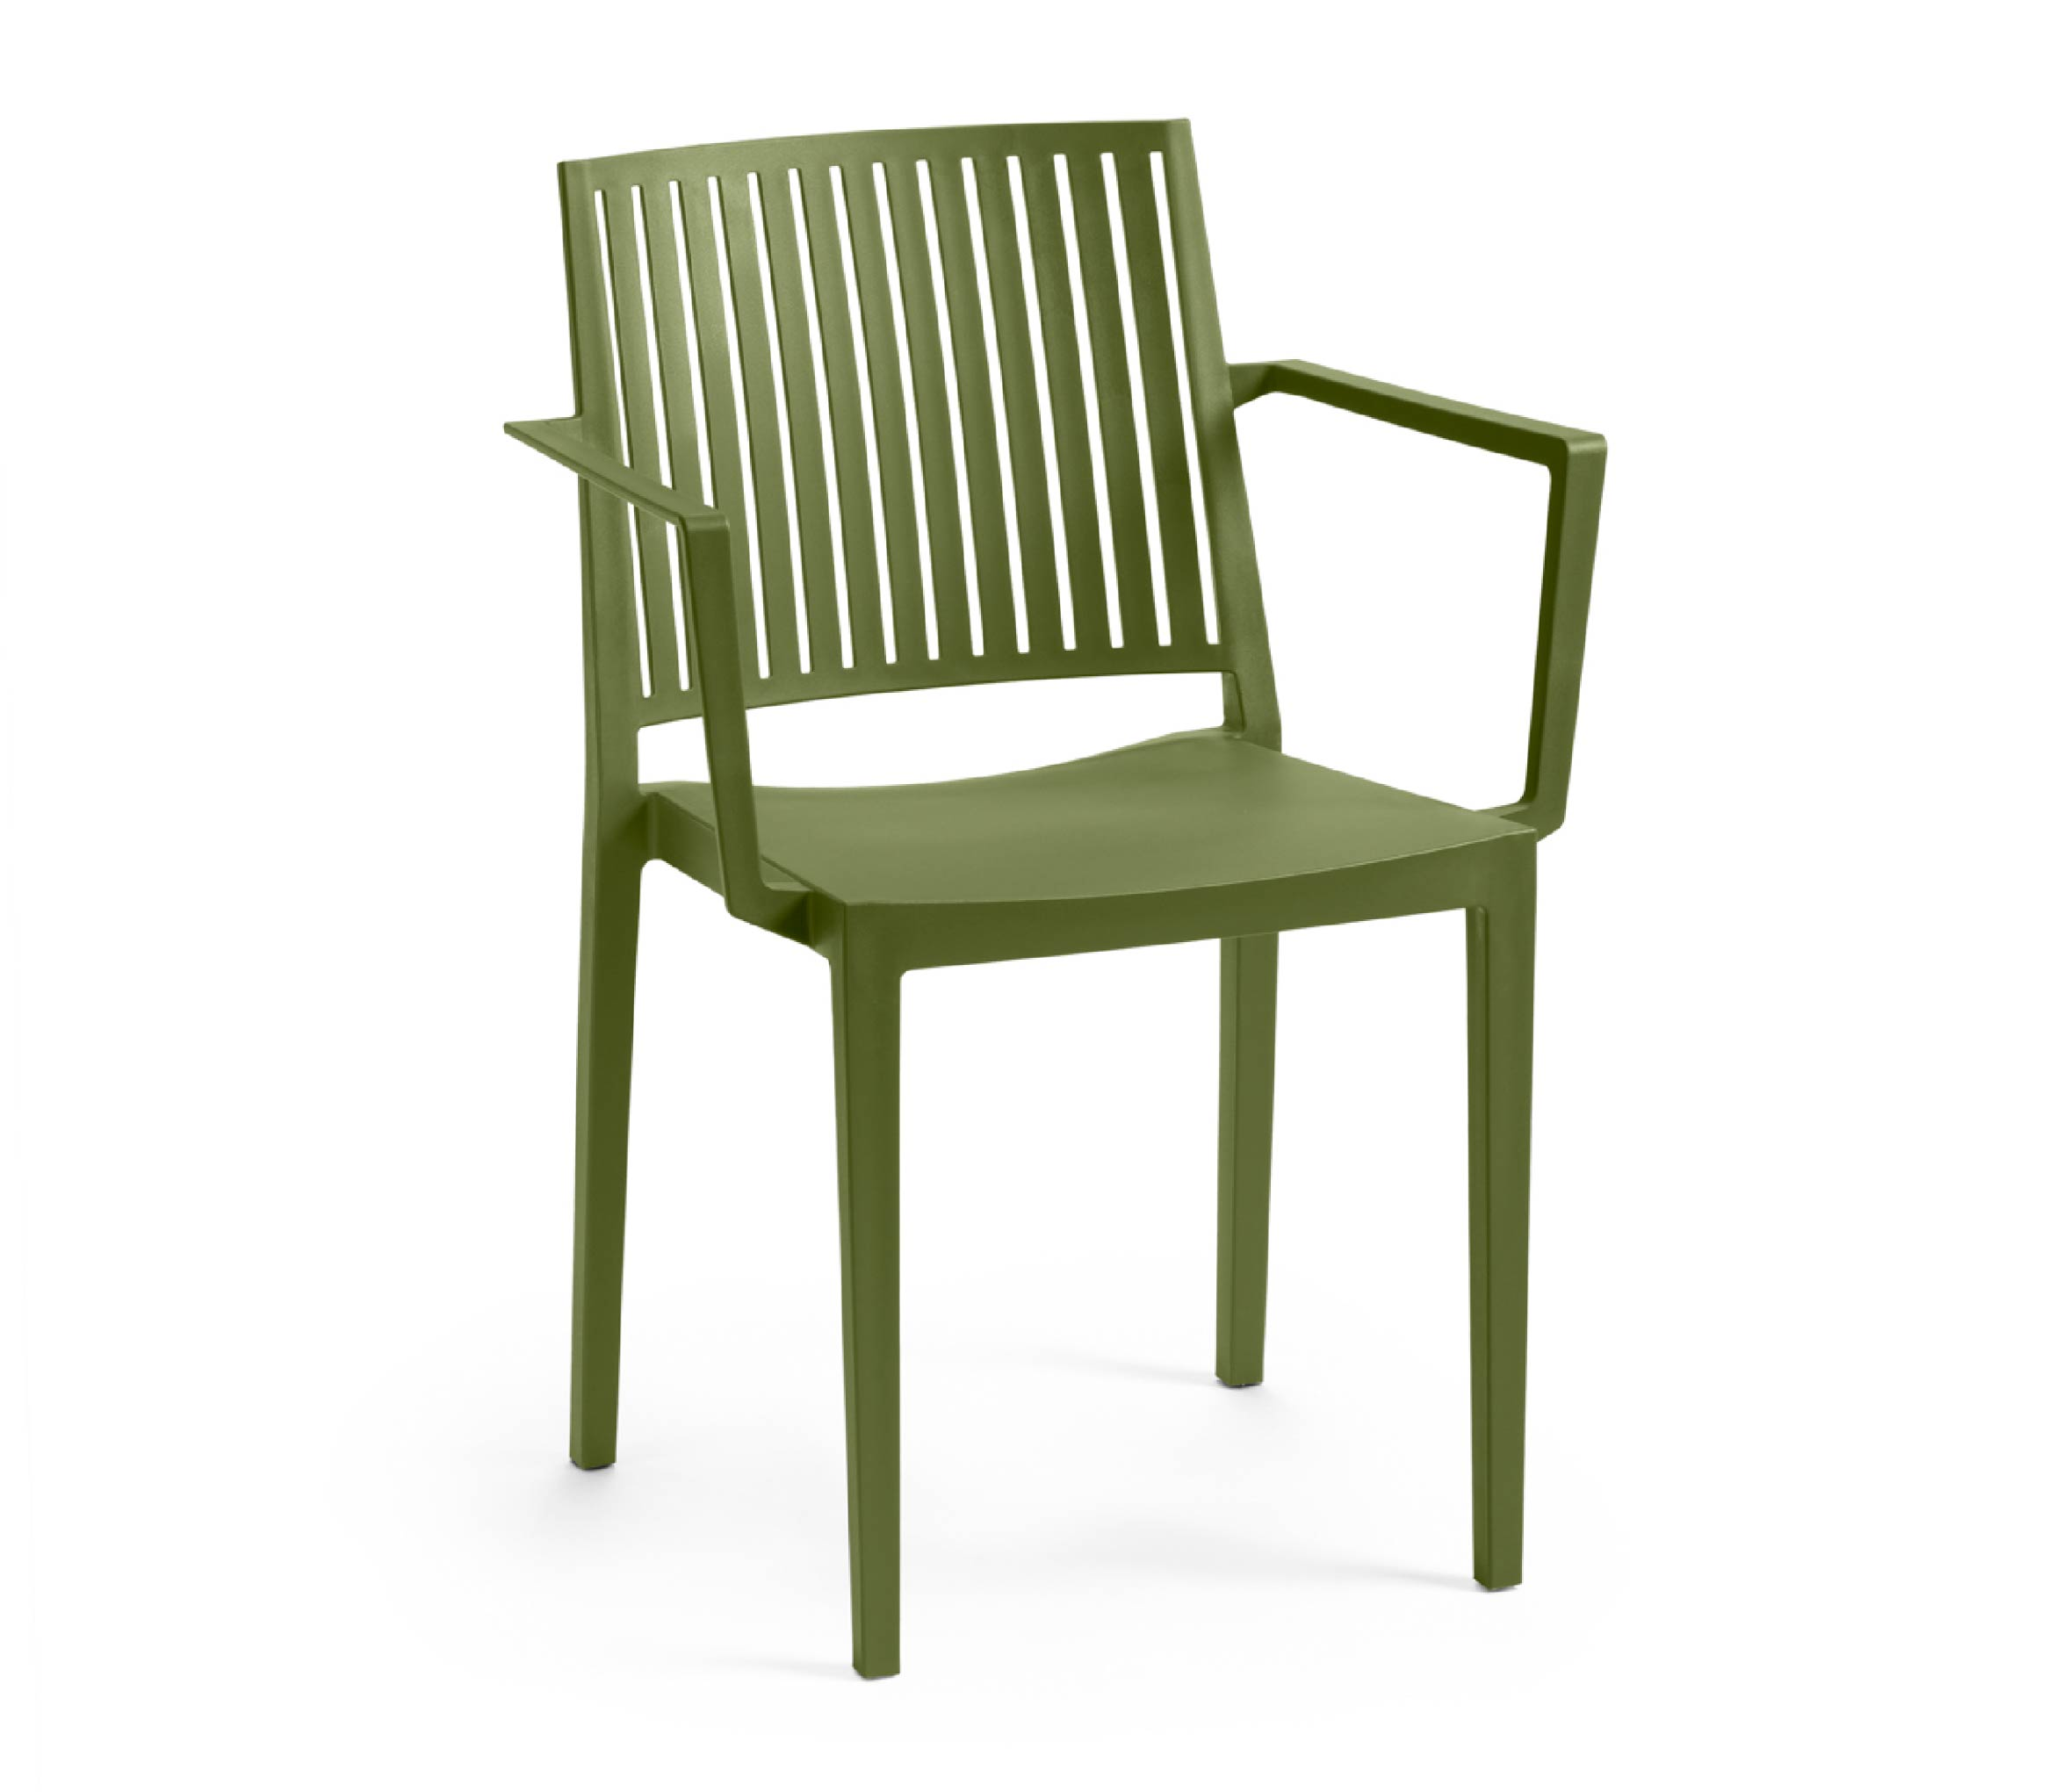 4 - TENSAI_FURNITURE_BARS_ARMCHAIR_GREEN_OLIVE_COLOR_PLASTIC_white_background_514_001